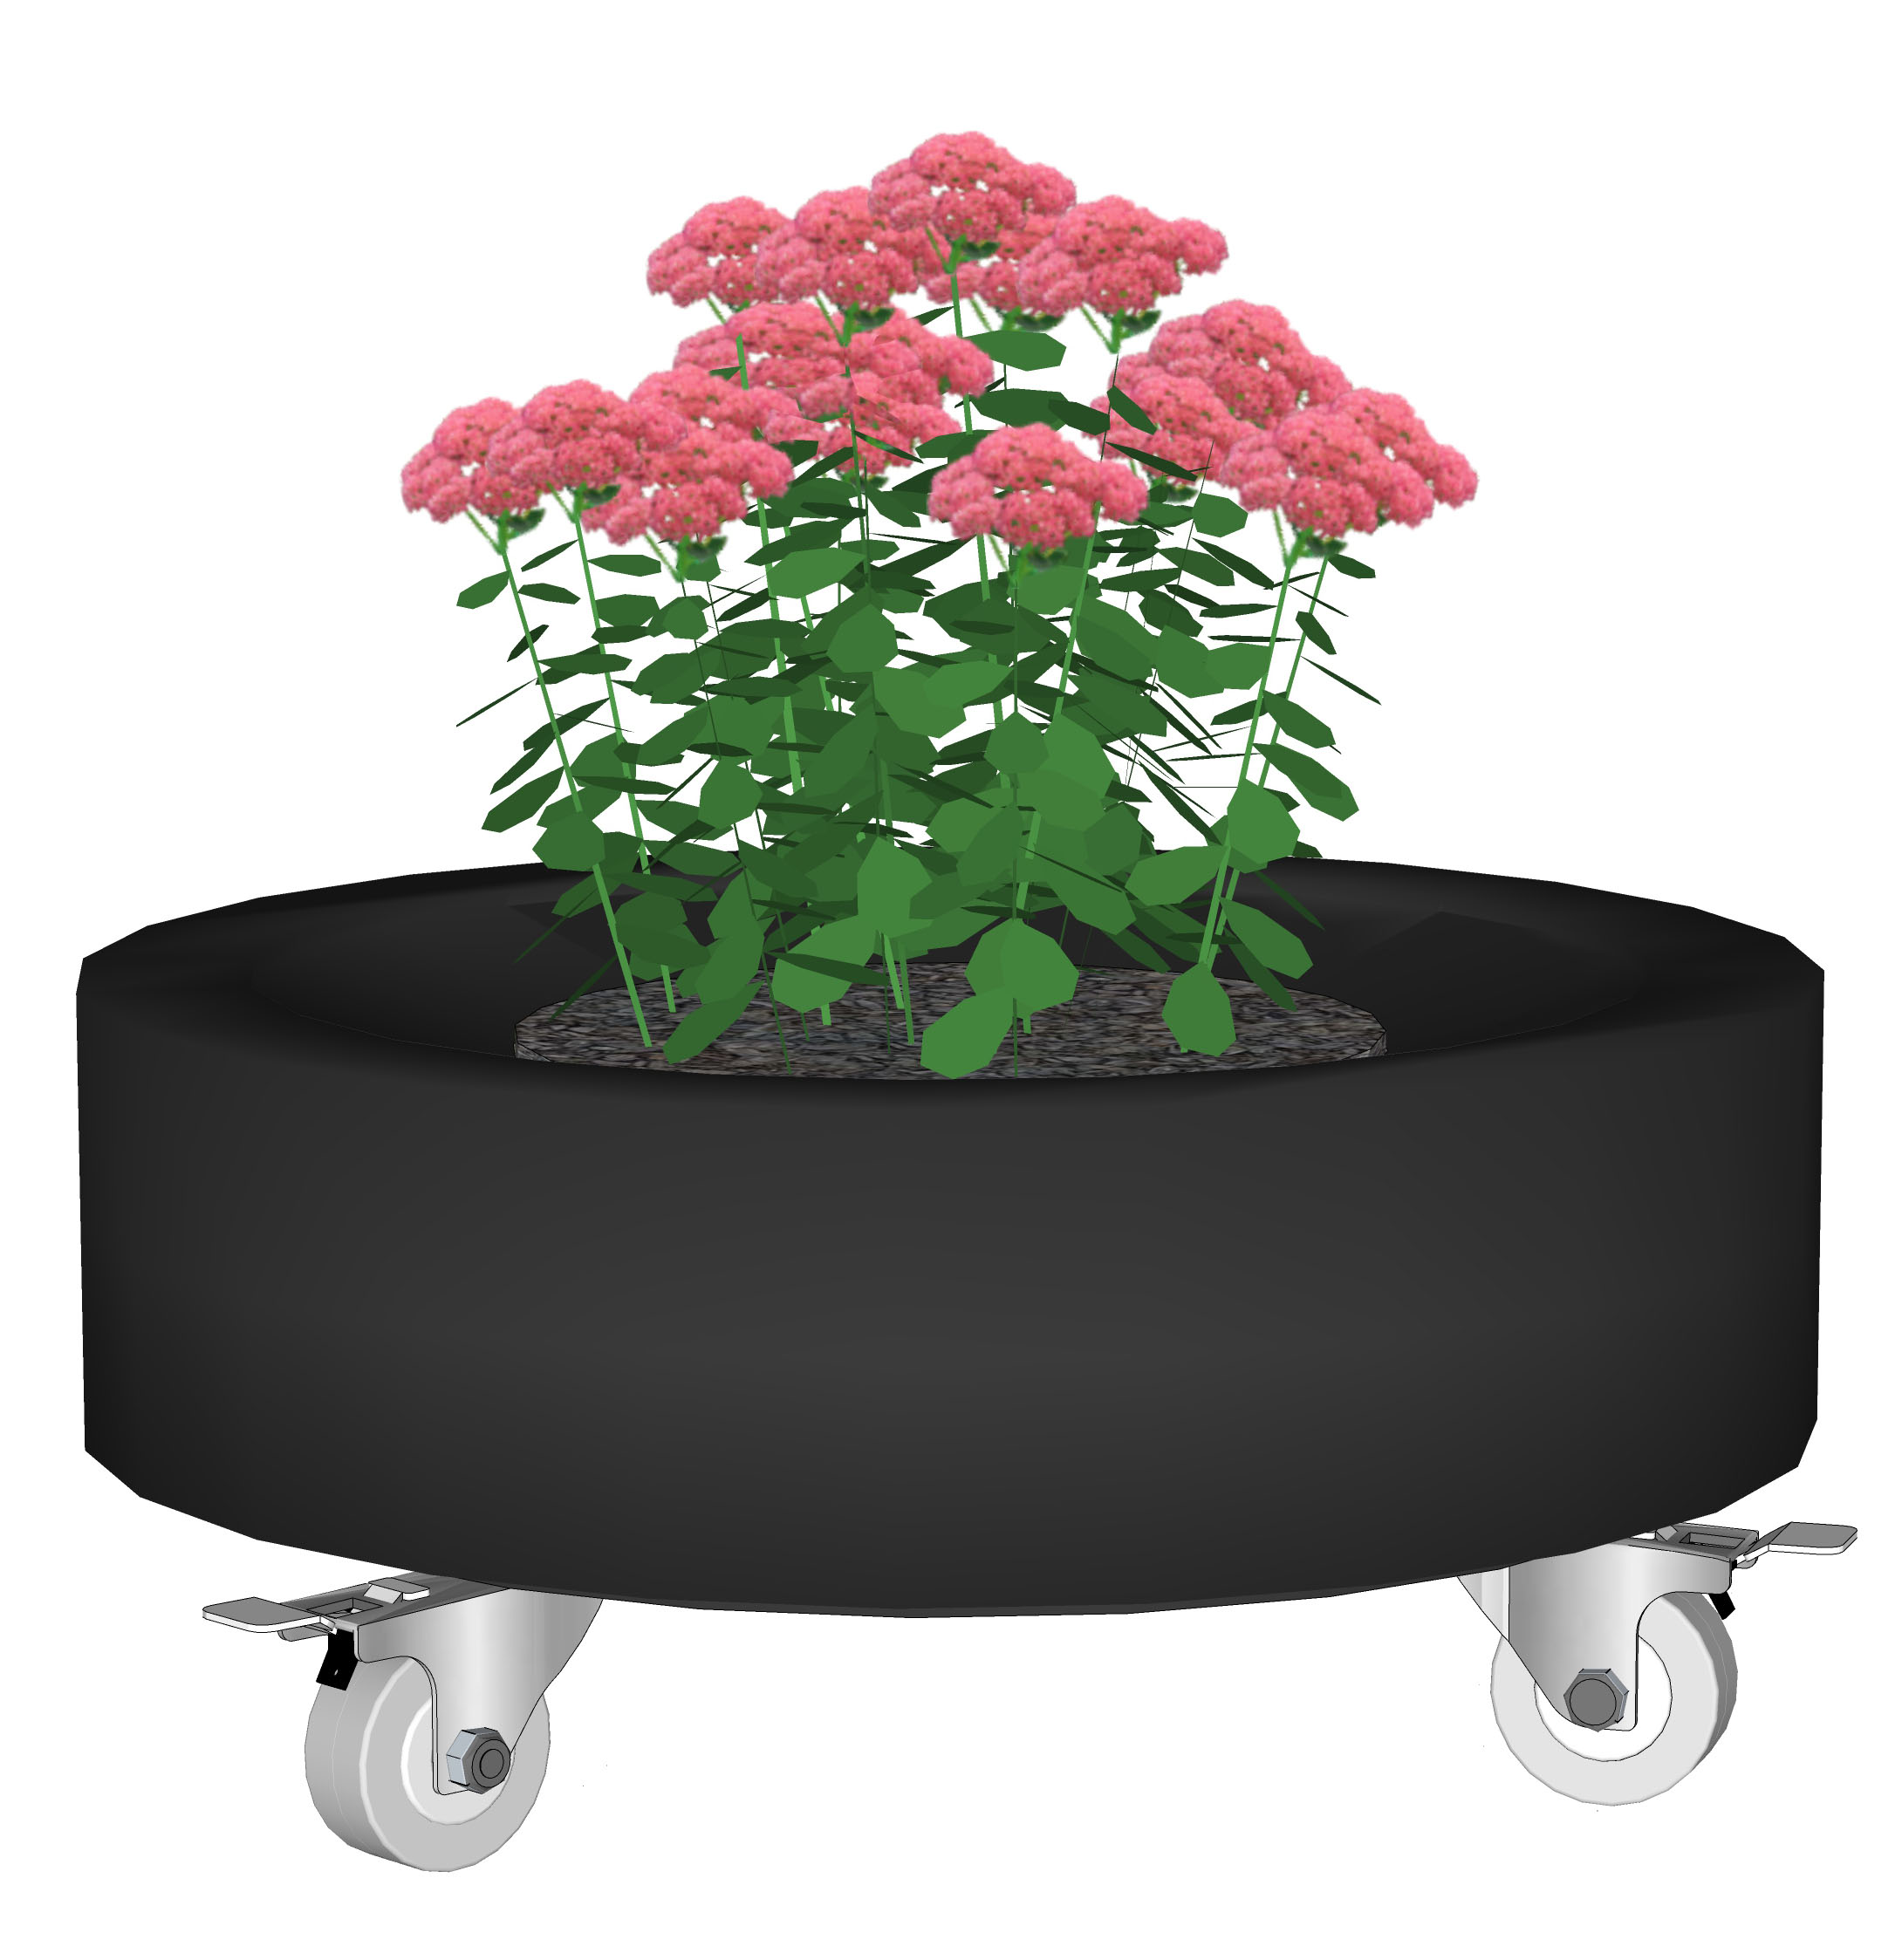 tyre planter Composed 1.jpg